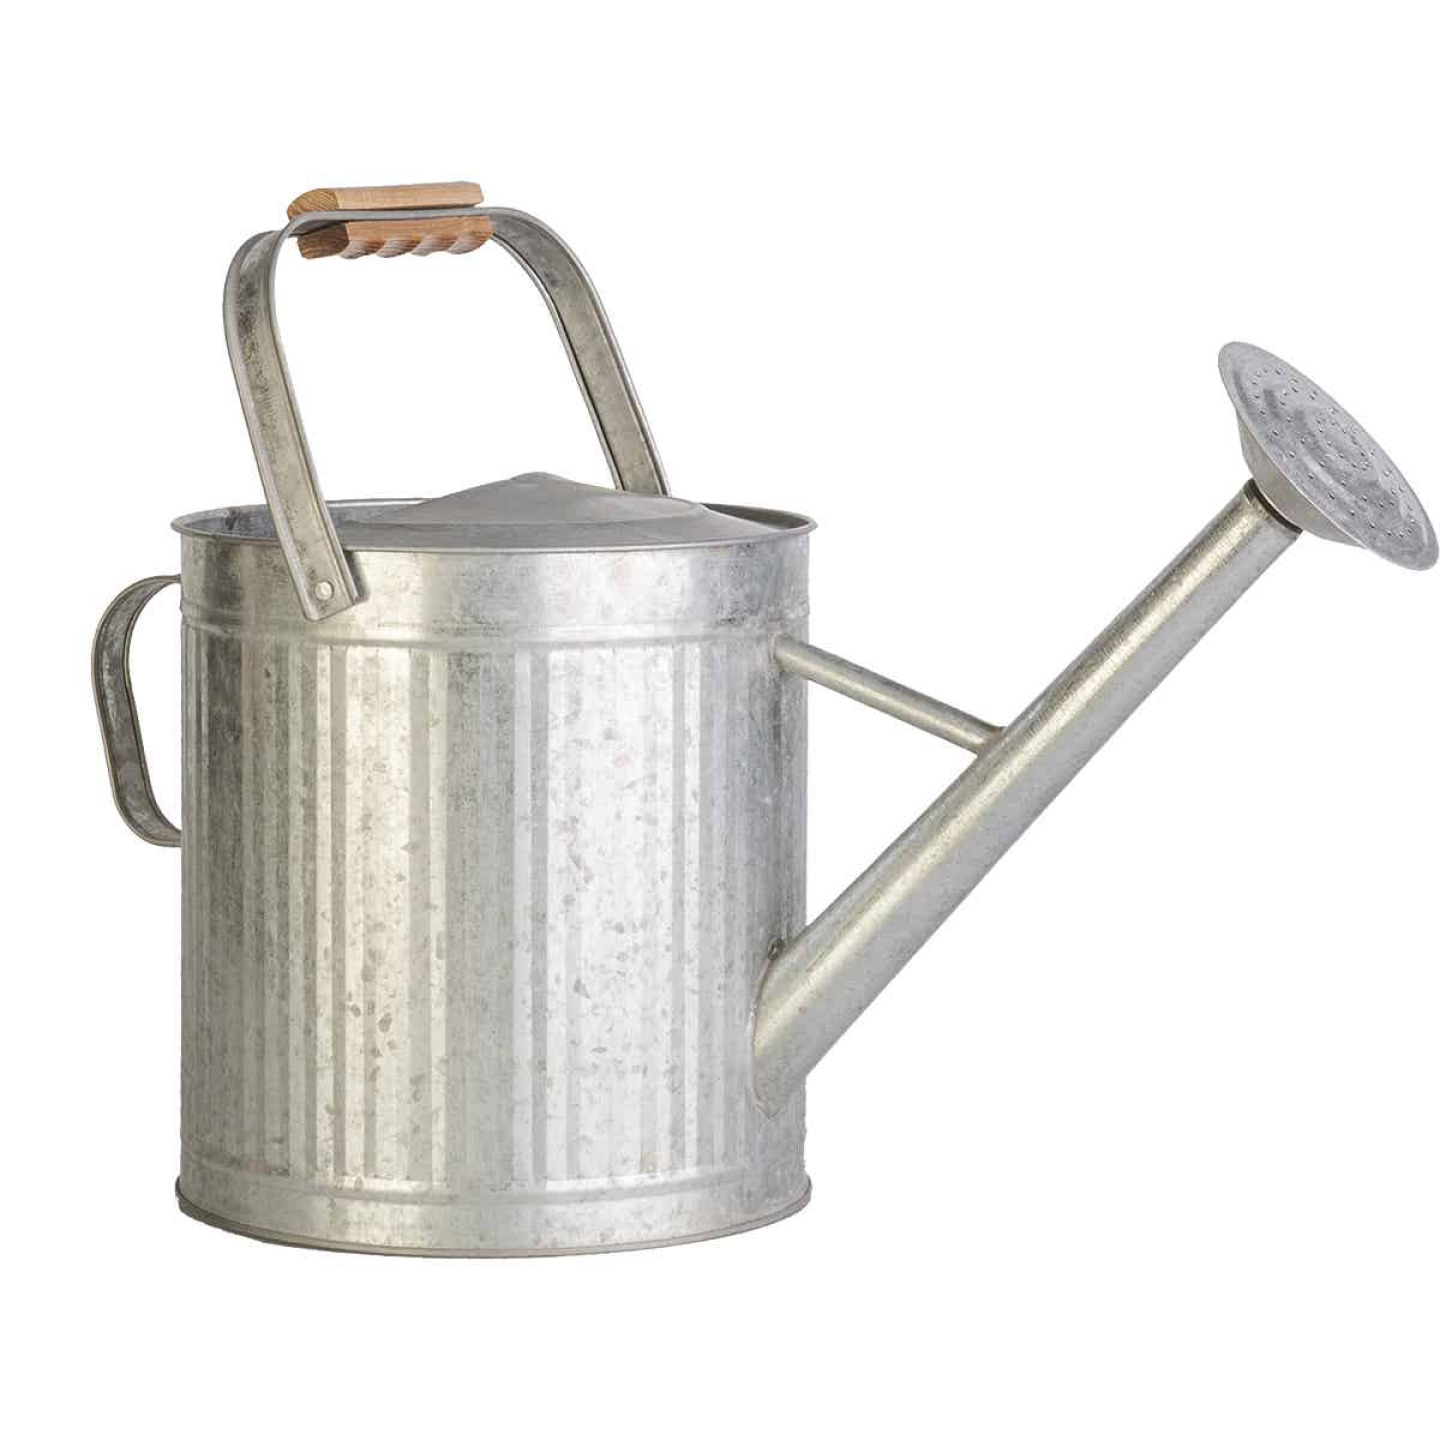 Panacea 2 Gal. Galvanized Steel Watering Can Image 1